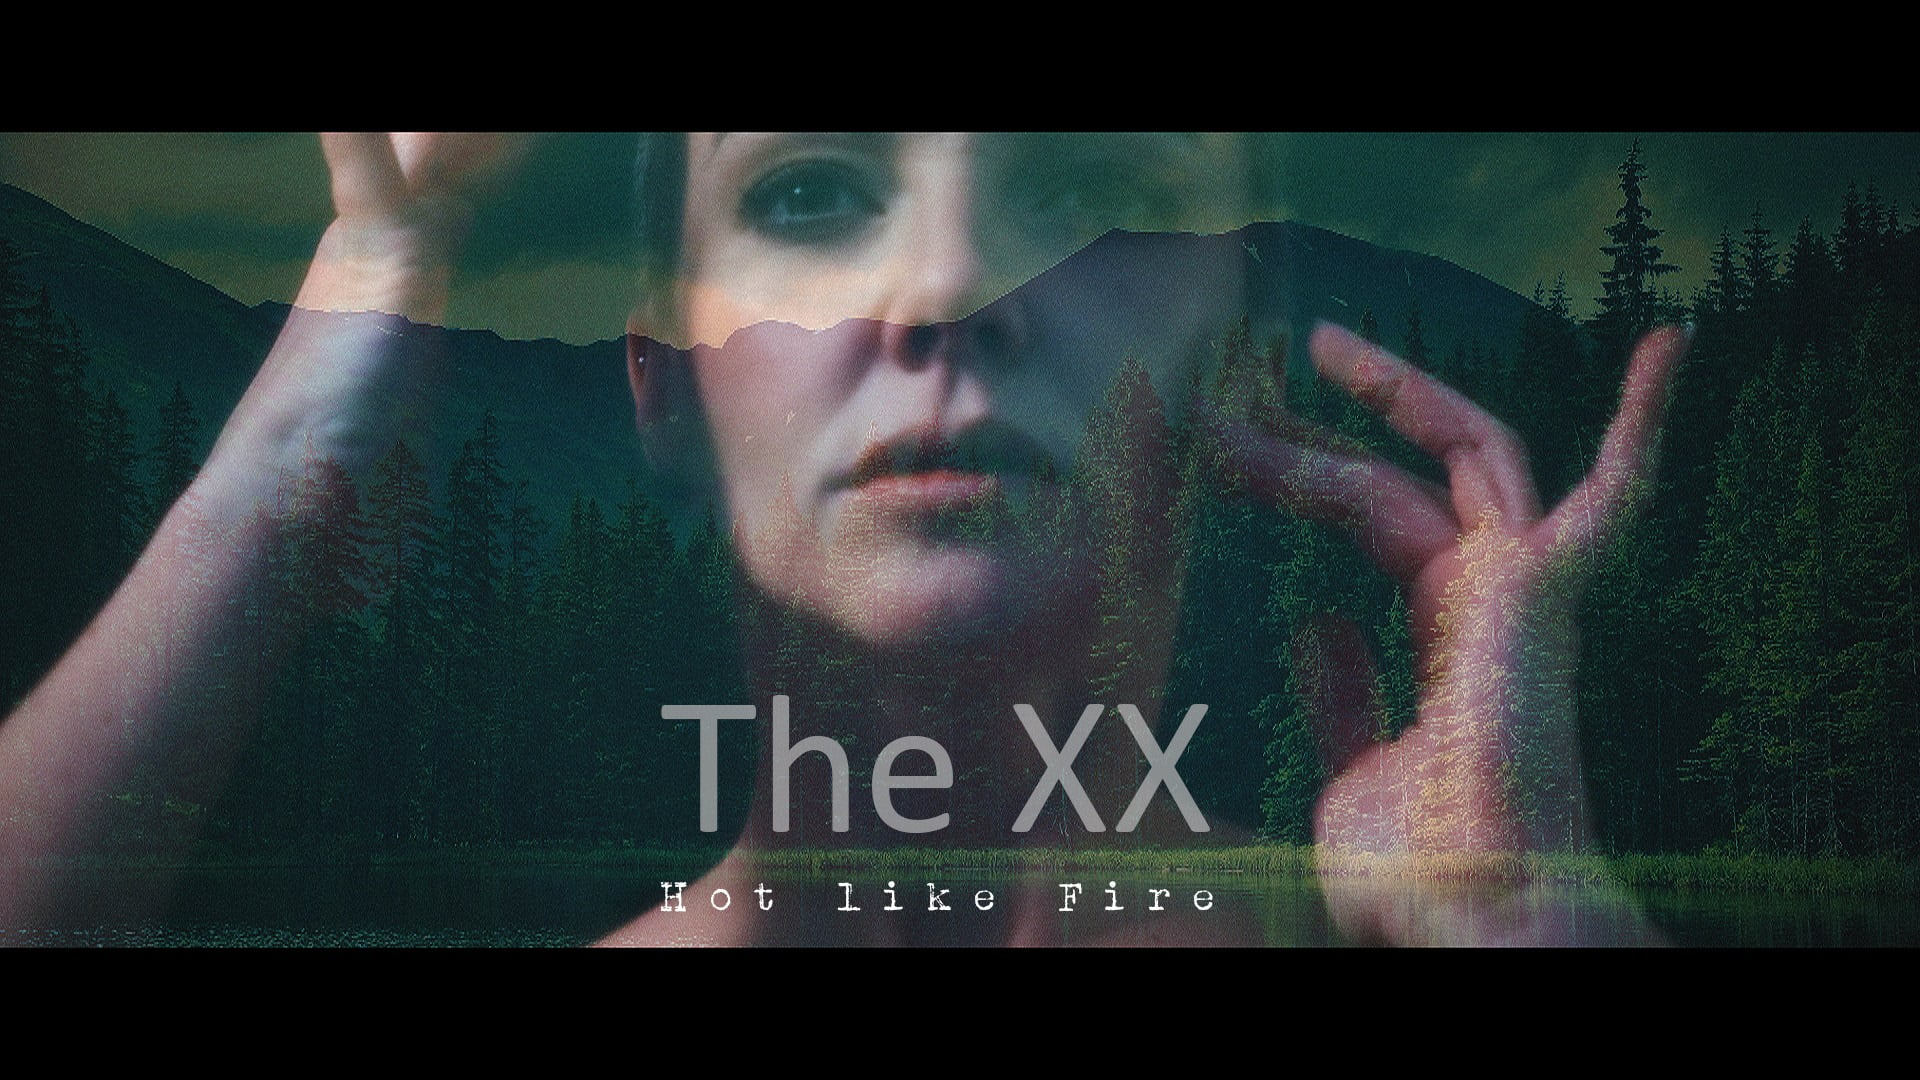 The XX - Hot like fire - music video clip